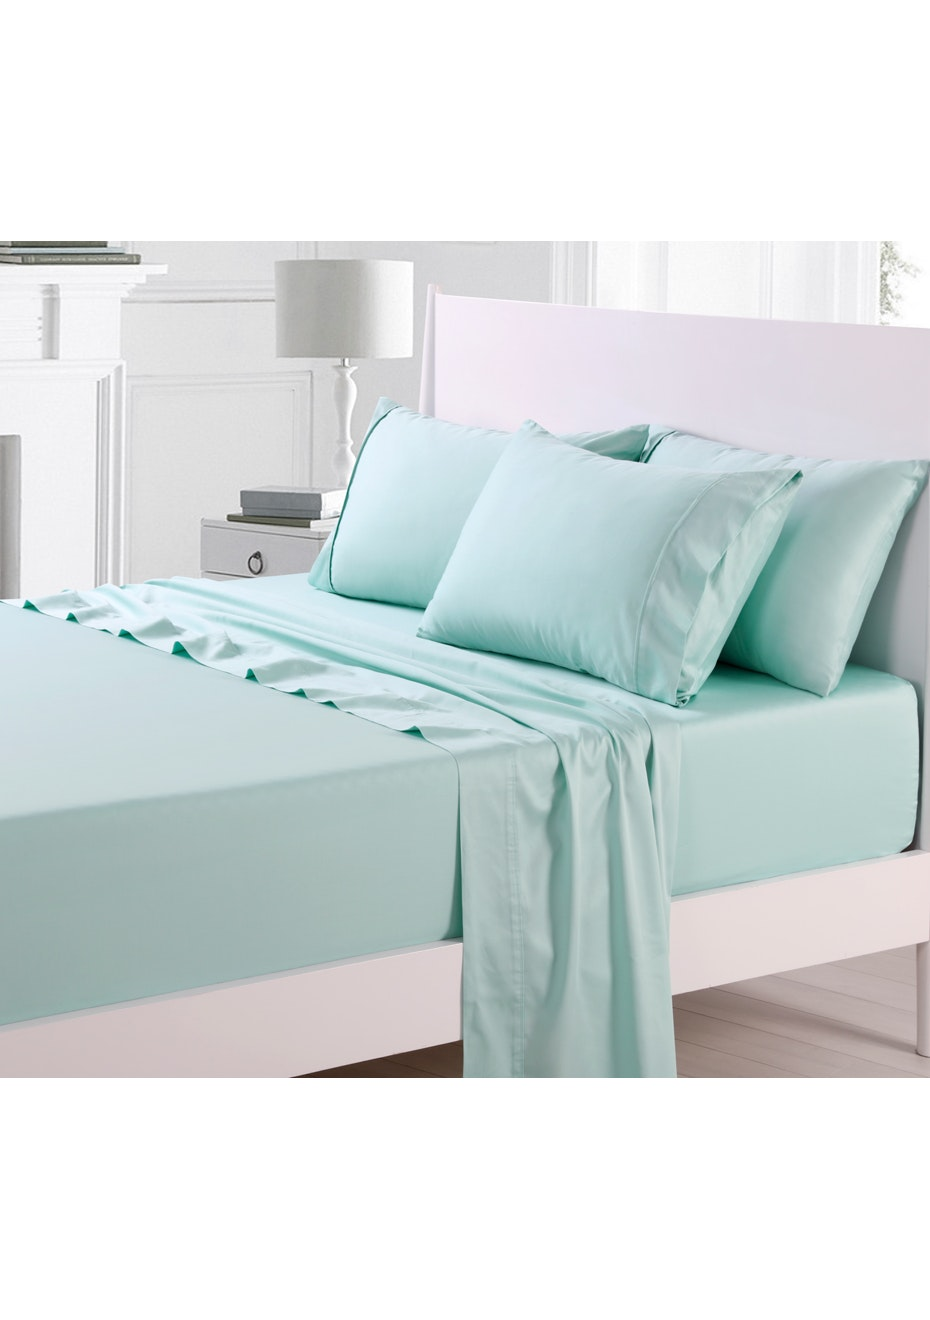 Duckegg 300TC Cotton Sateen Sheet Set - King Bed